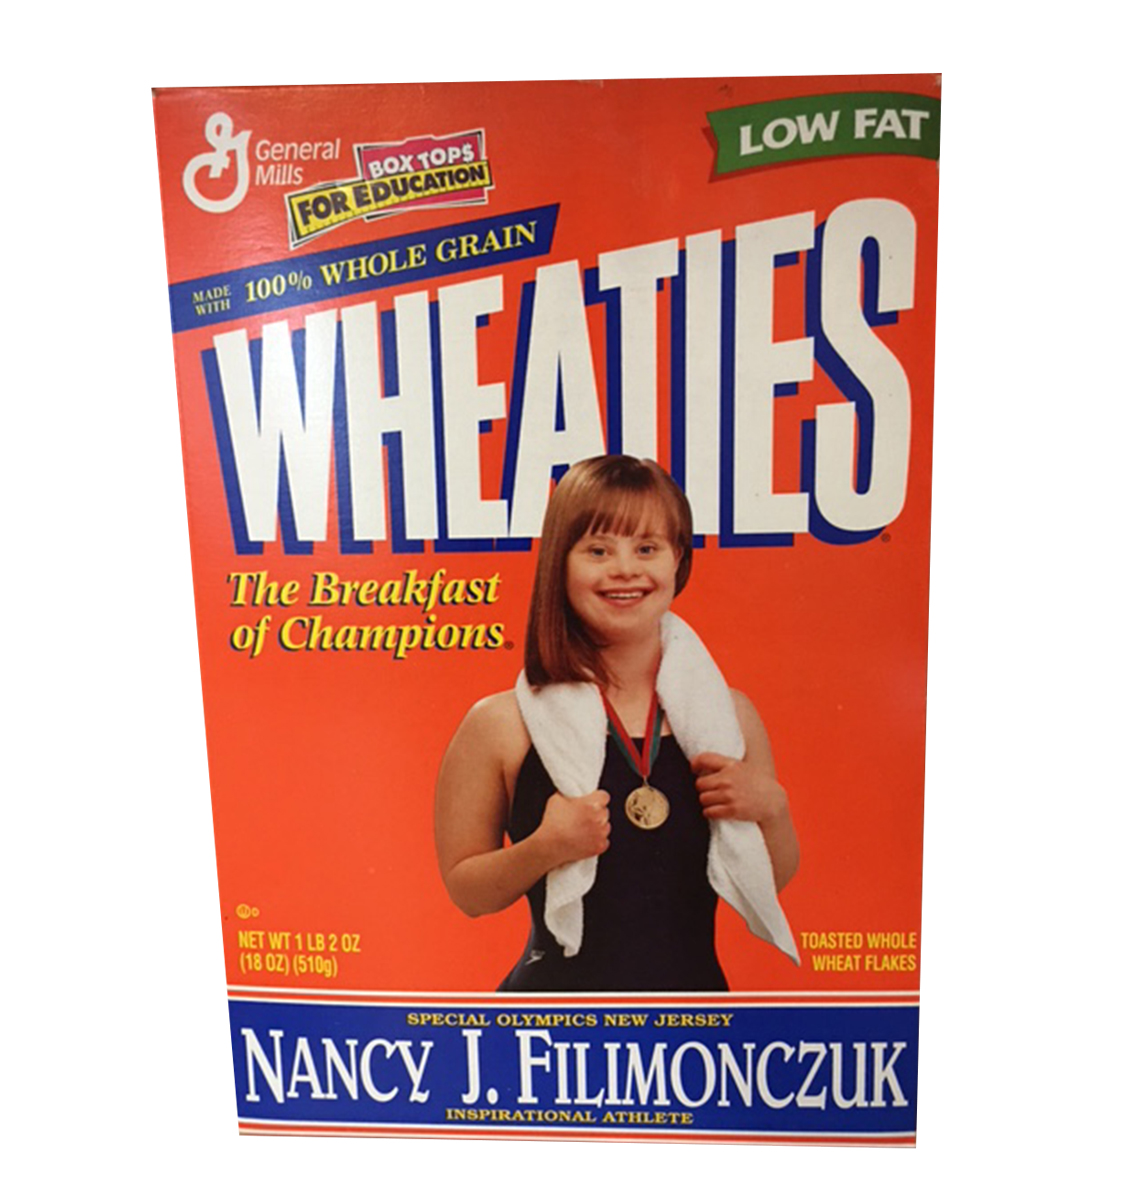 Wheaties Box Featuring Special Olympian Inspires Strength